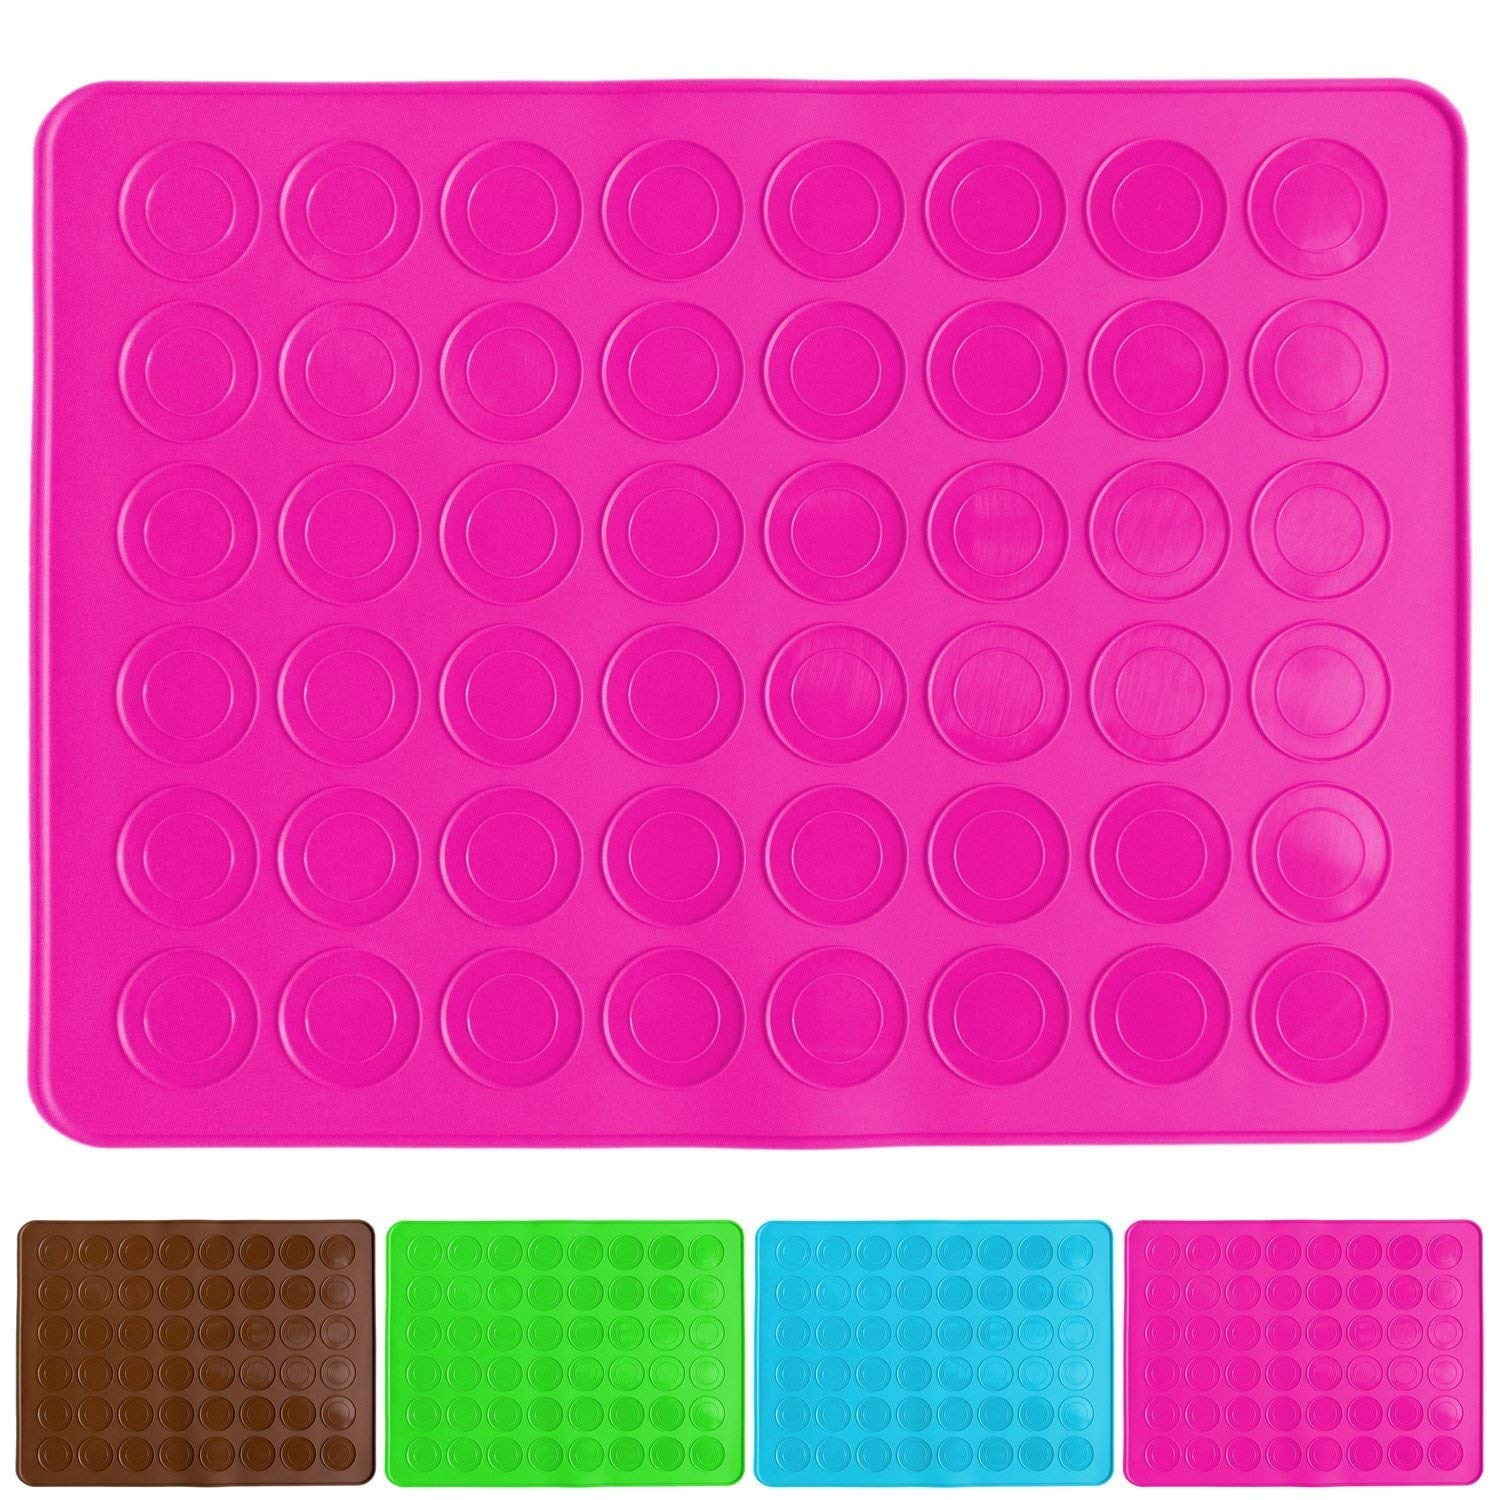 Belmalia macaron silicone baking mat for 24 perfect macarons, 48 moulds, non-stick coated, 38x28cm Pink